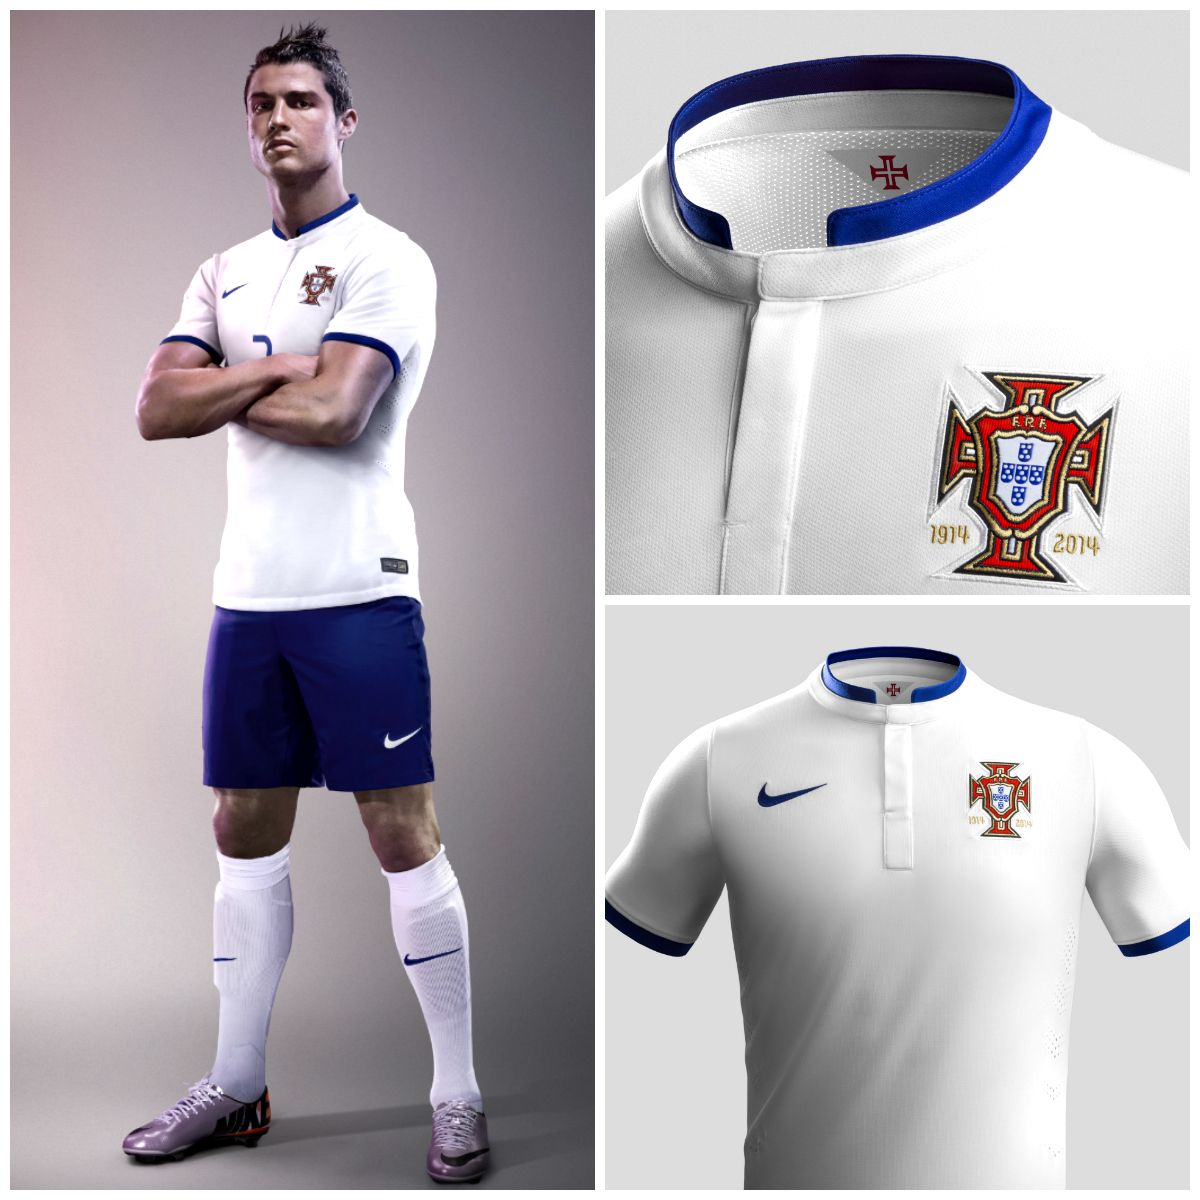 new styles f4a82 2a3ba Portugal 2014 Away Soccer Jersey looks great on ...